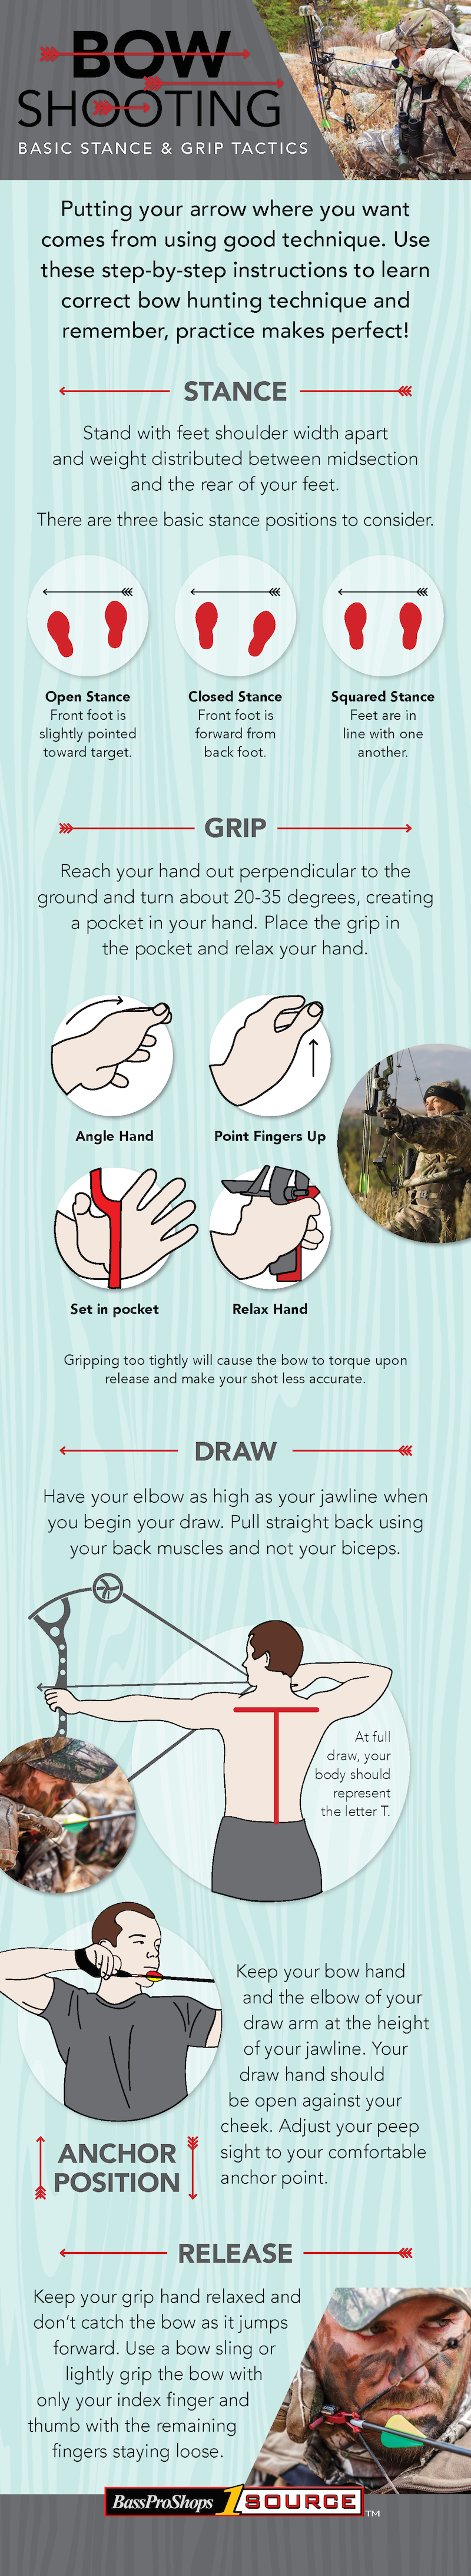 Bow_Hunting_Infographic_v2